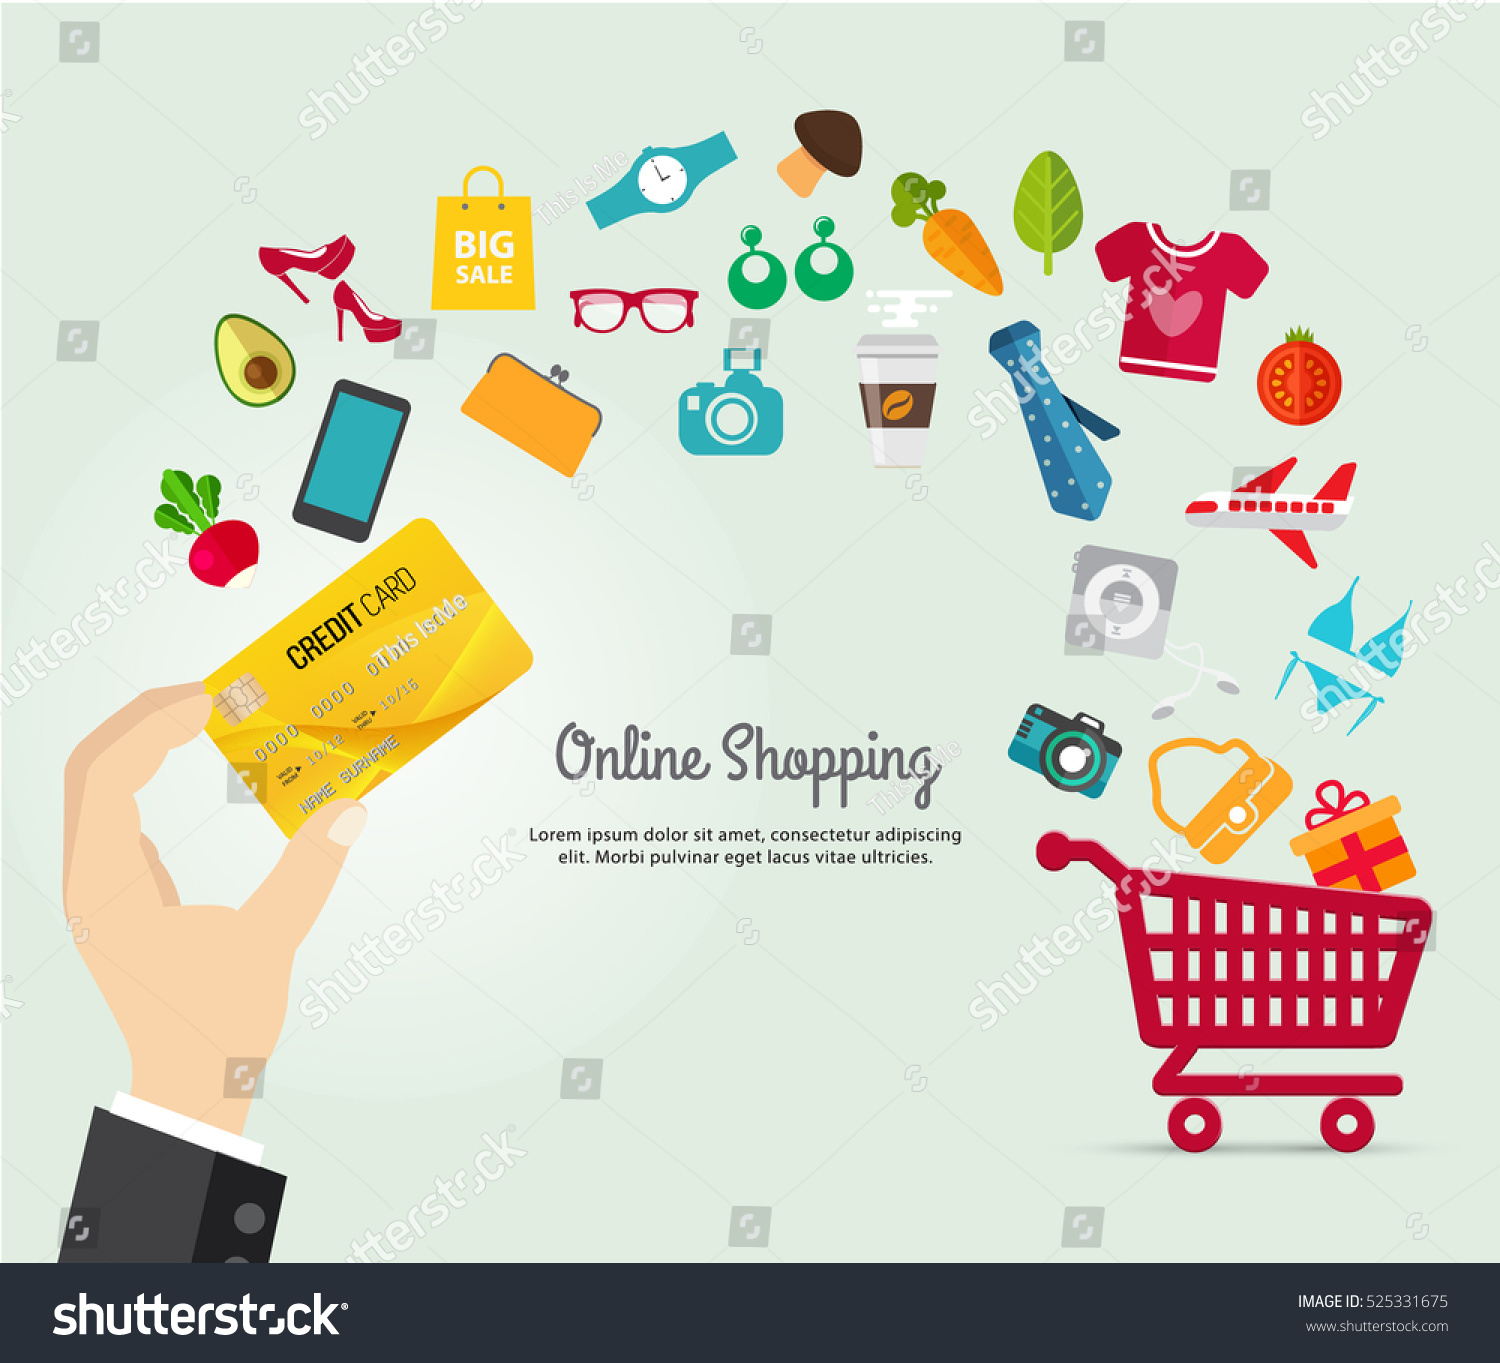 stock-vector-online-shopping-e-commerce-concept-business-order-item-store-online-on-smartphone-tablet-and-pay-525331675.jpg